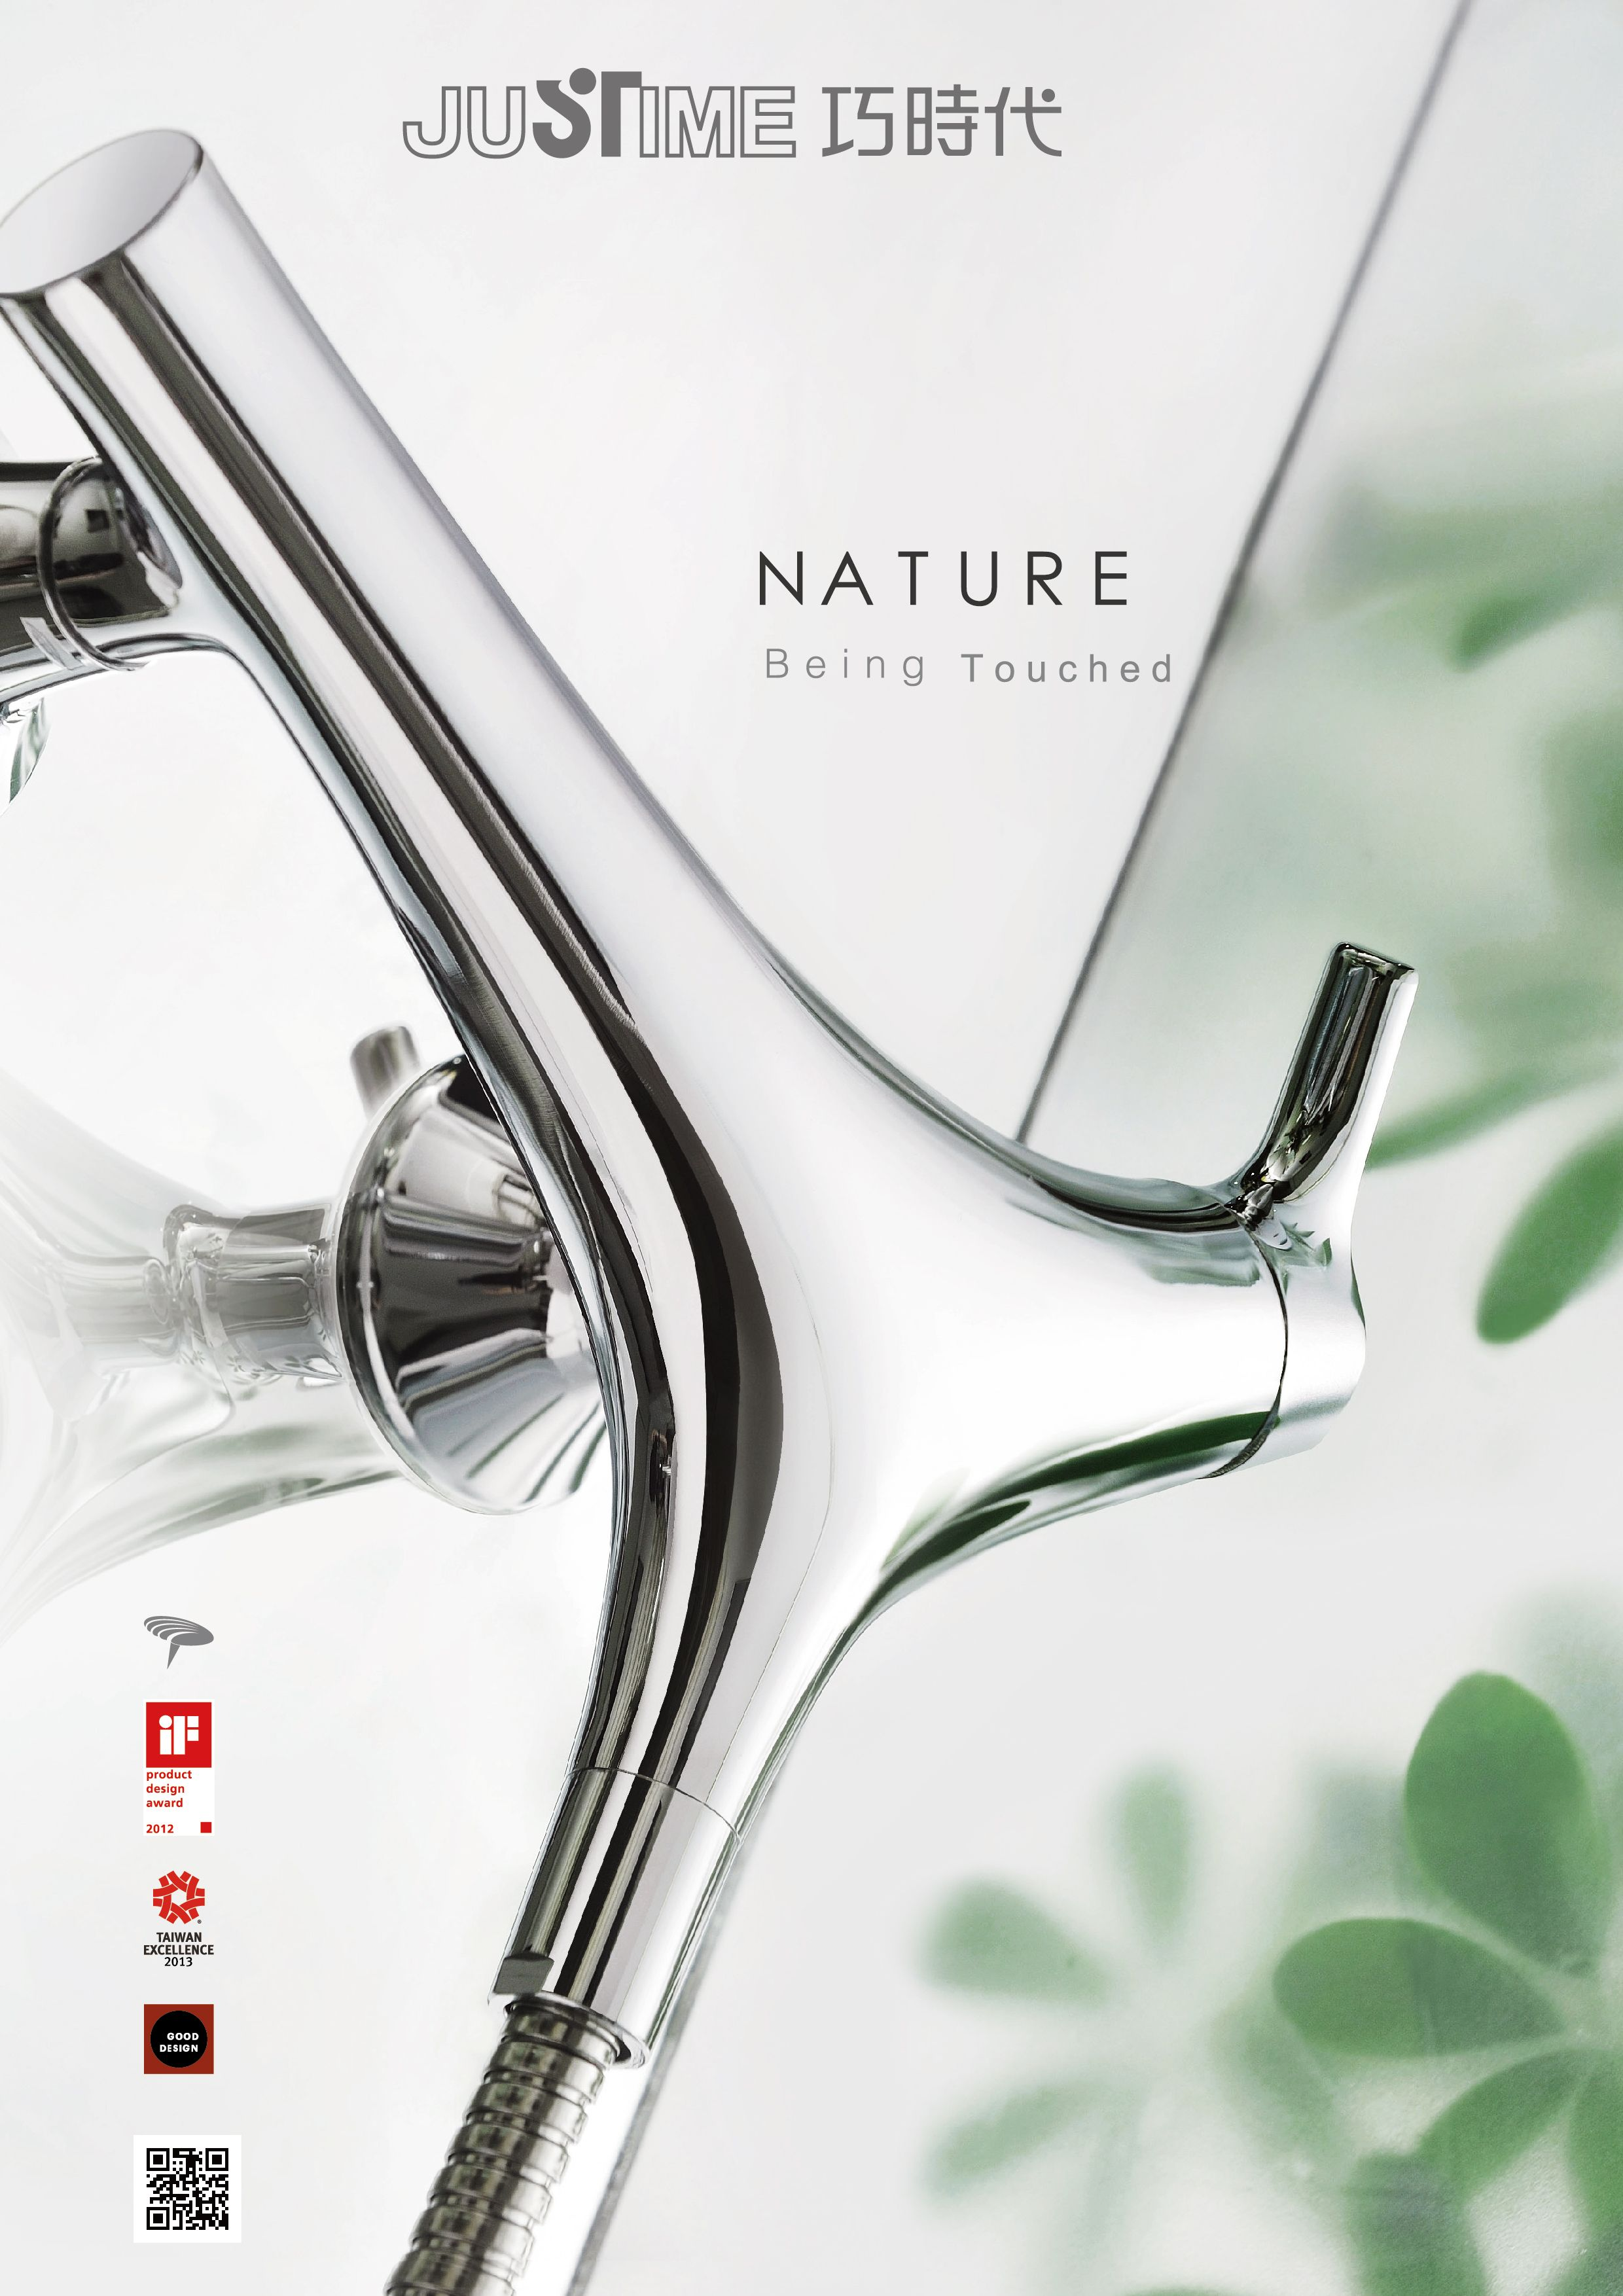 JUSTIME NATURE Shower Faucet Chicago Good Design Award 2012 IF Product